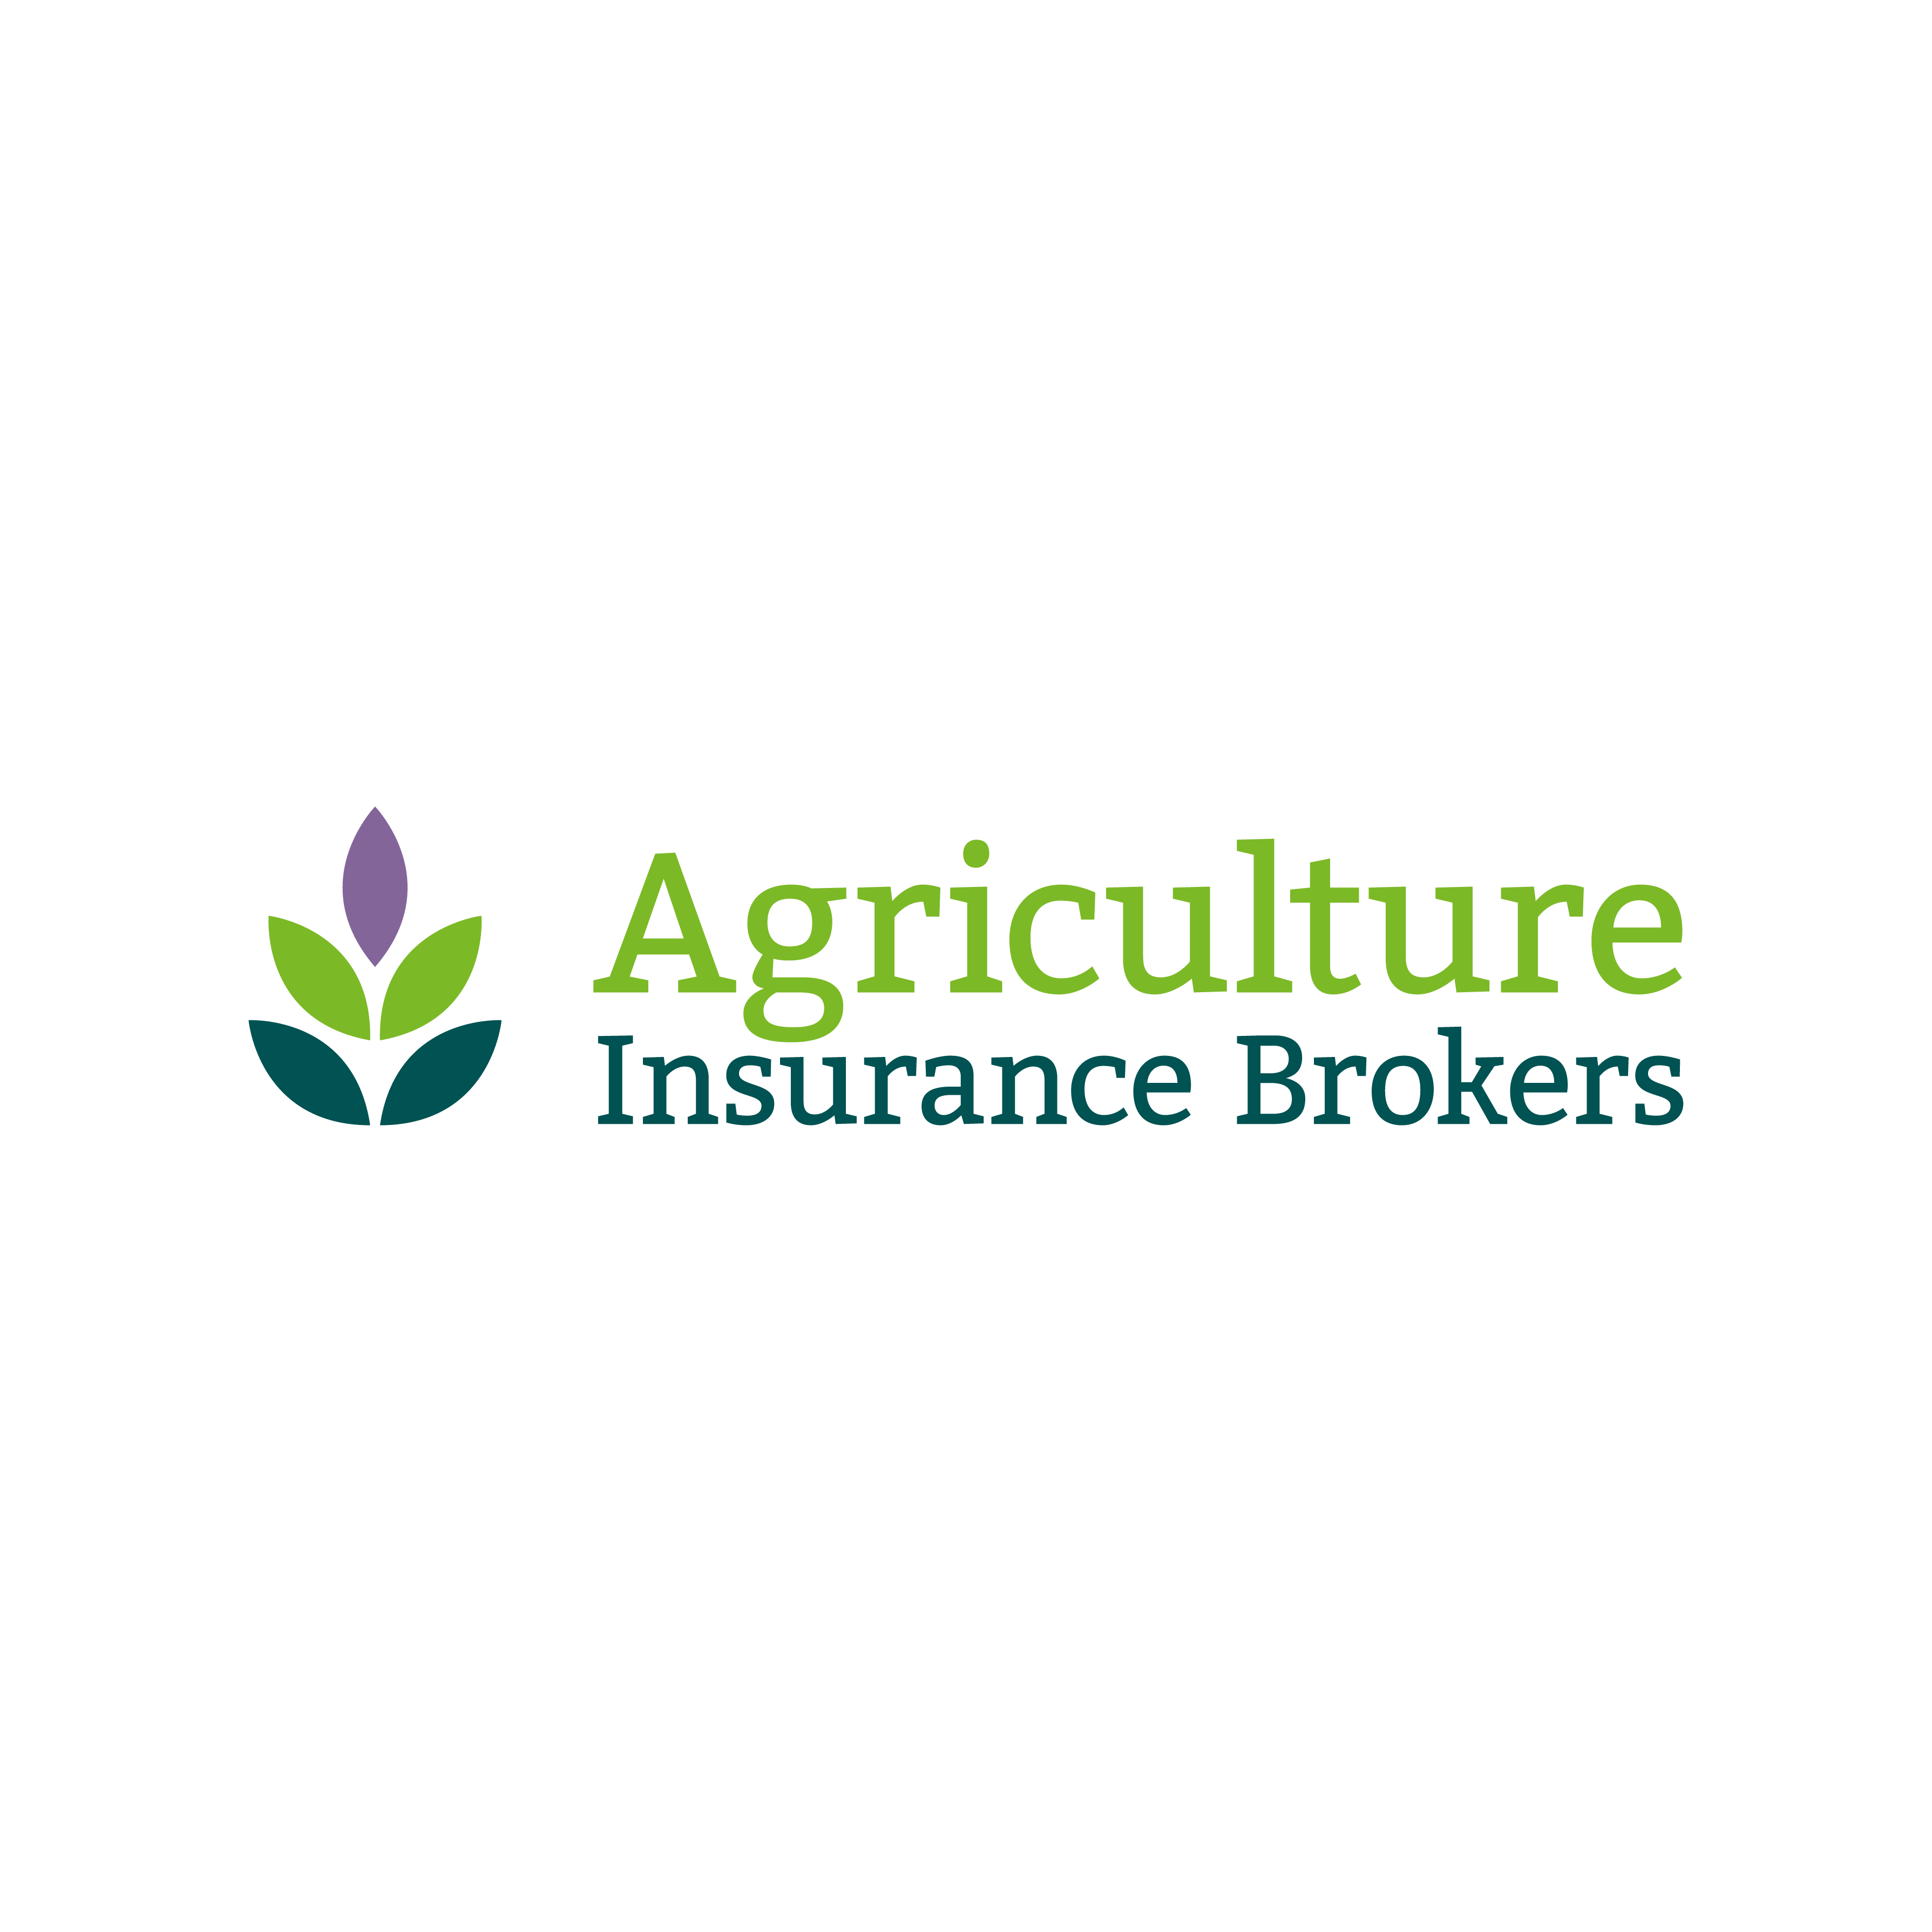 Agriculture Insurance Brokers